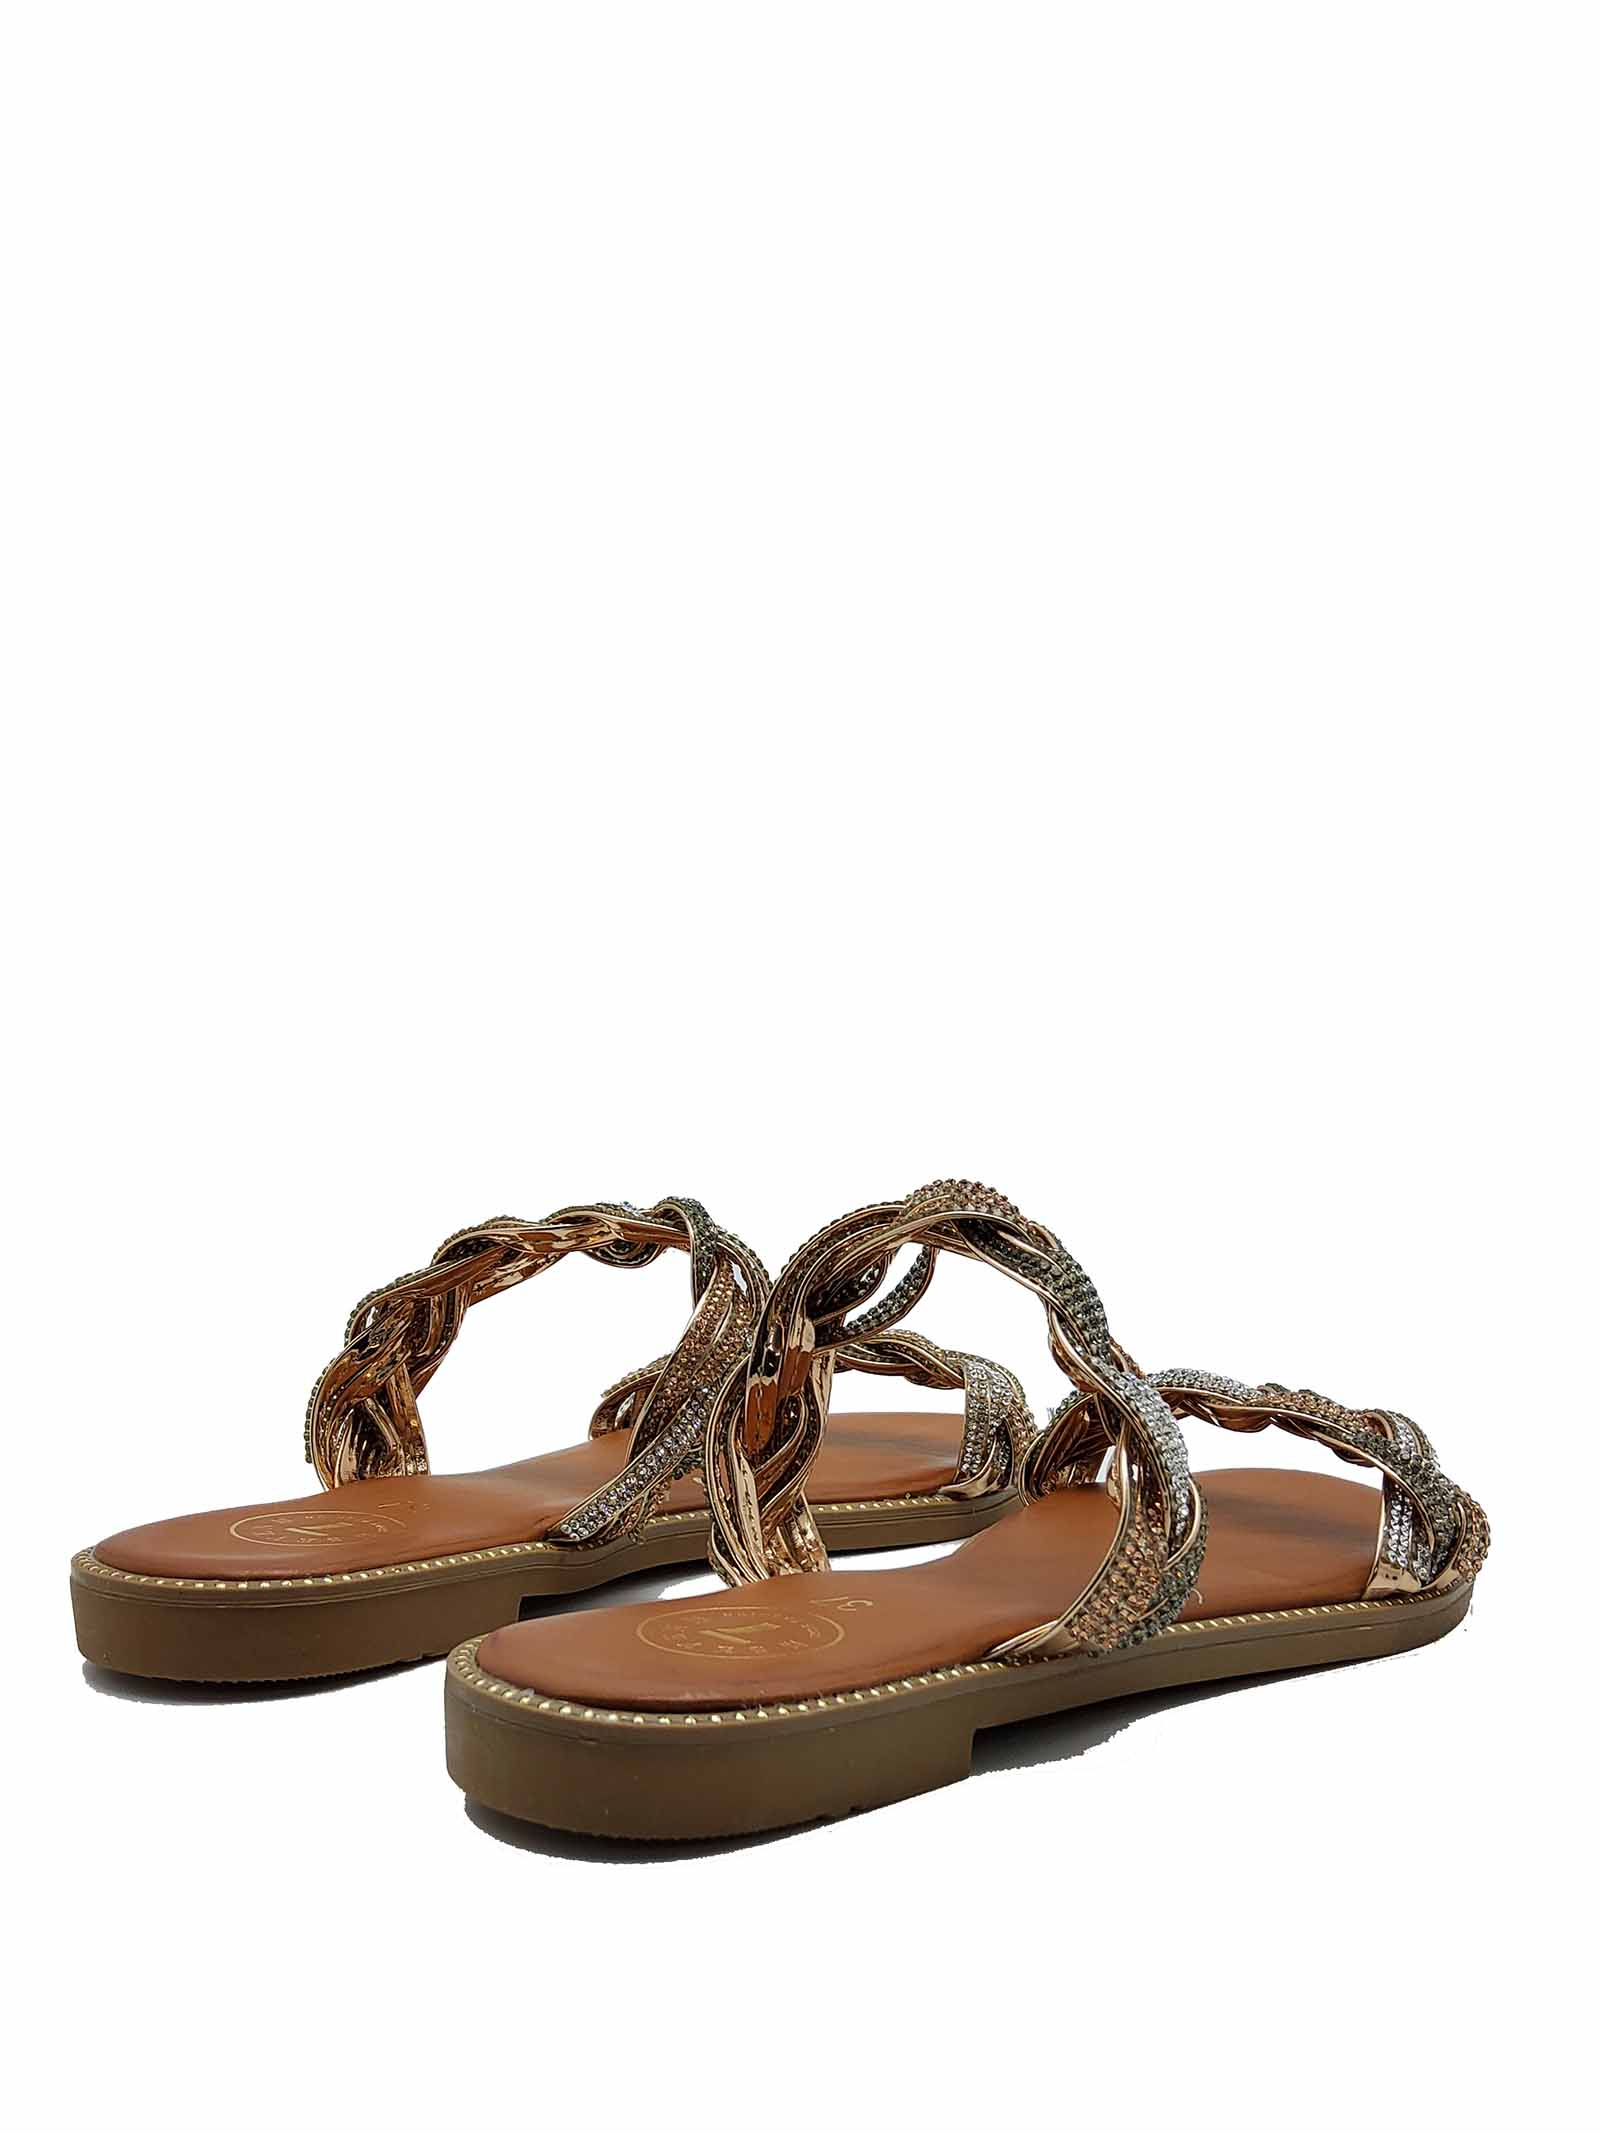 Women's Shoes Low Sandals with Double Gold and Silver Chain and Rubber Sole Exe   Flat sandals   3374604